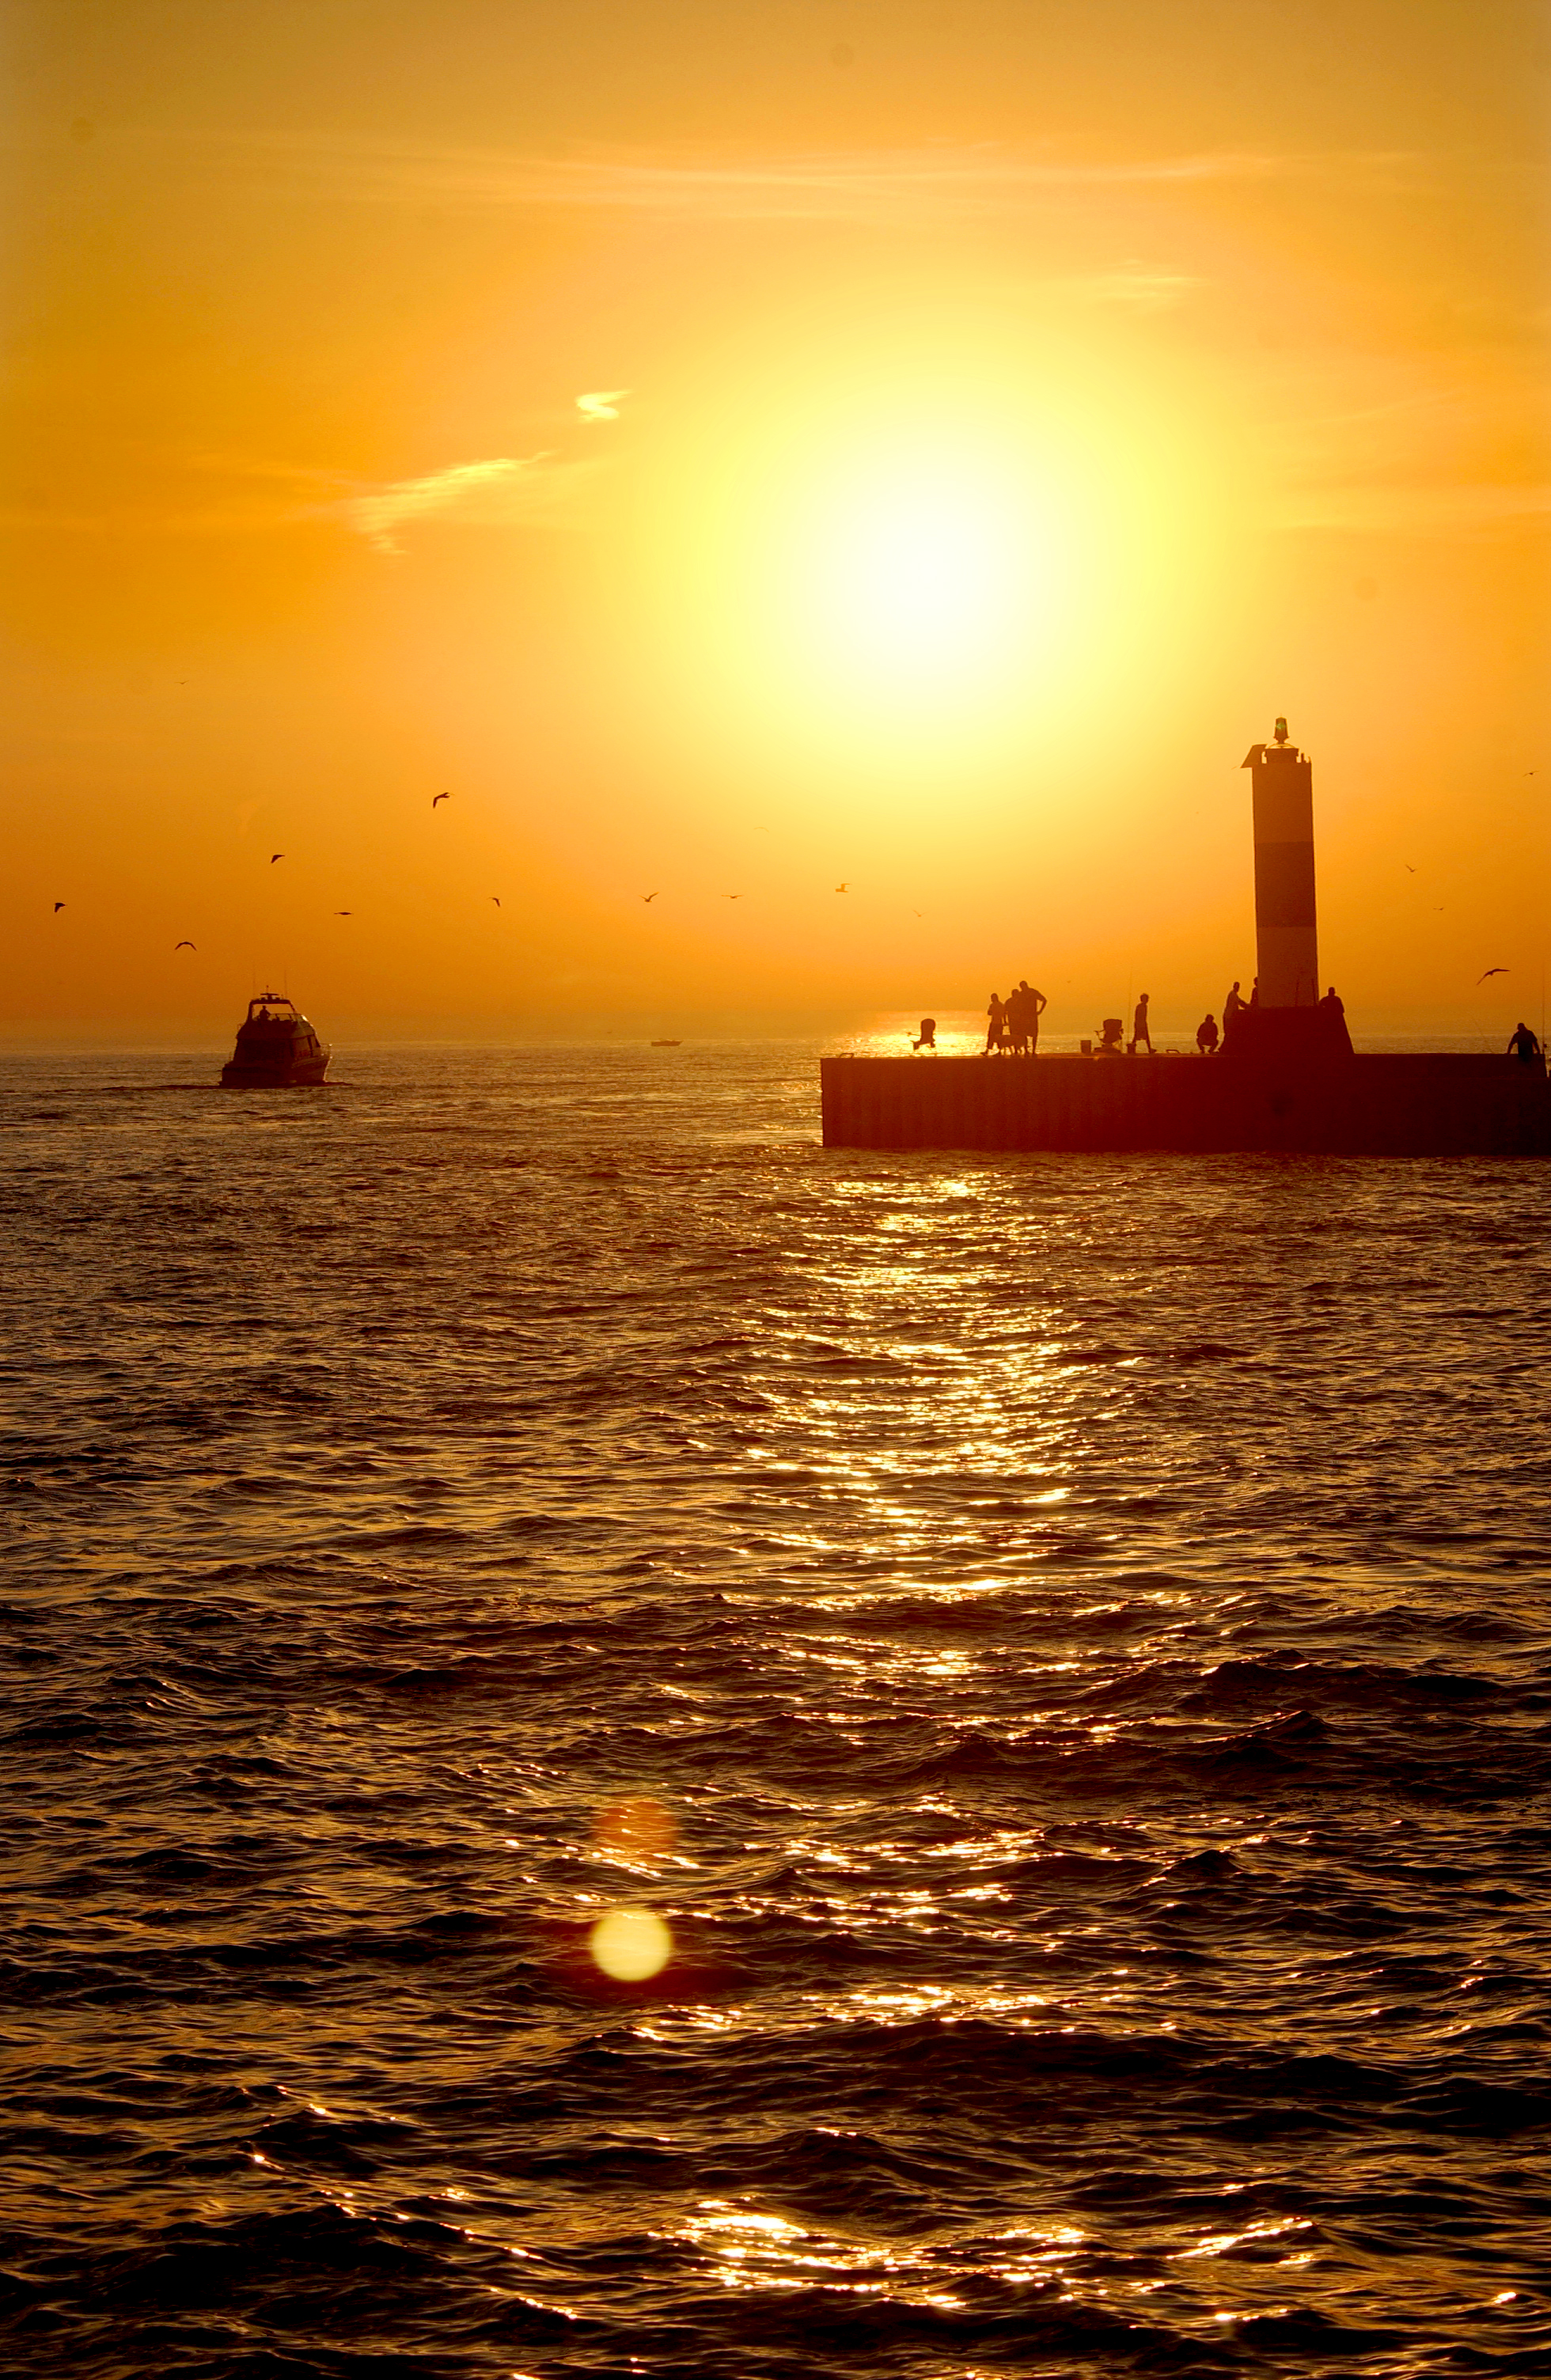 Grand Haven Pier at sunset. Image credit: Michigan Sea Grant via flickr.com